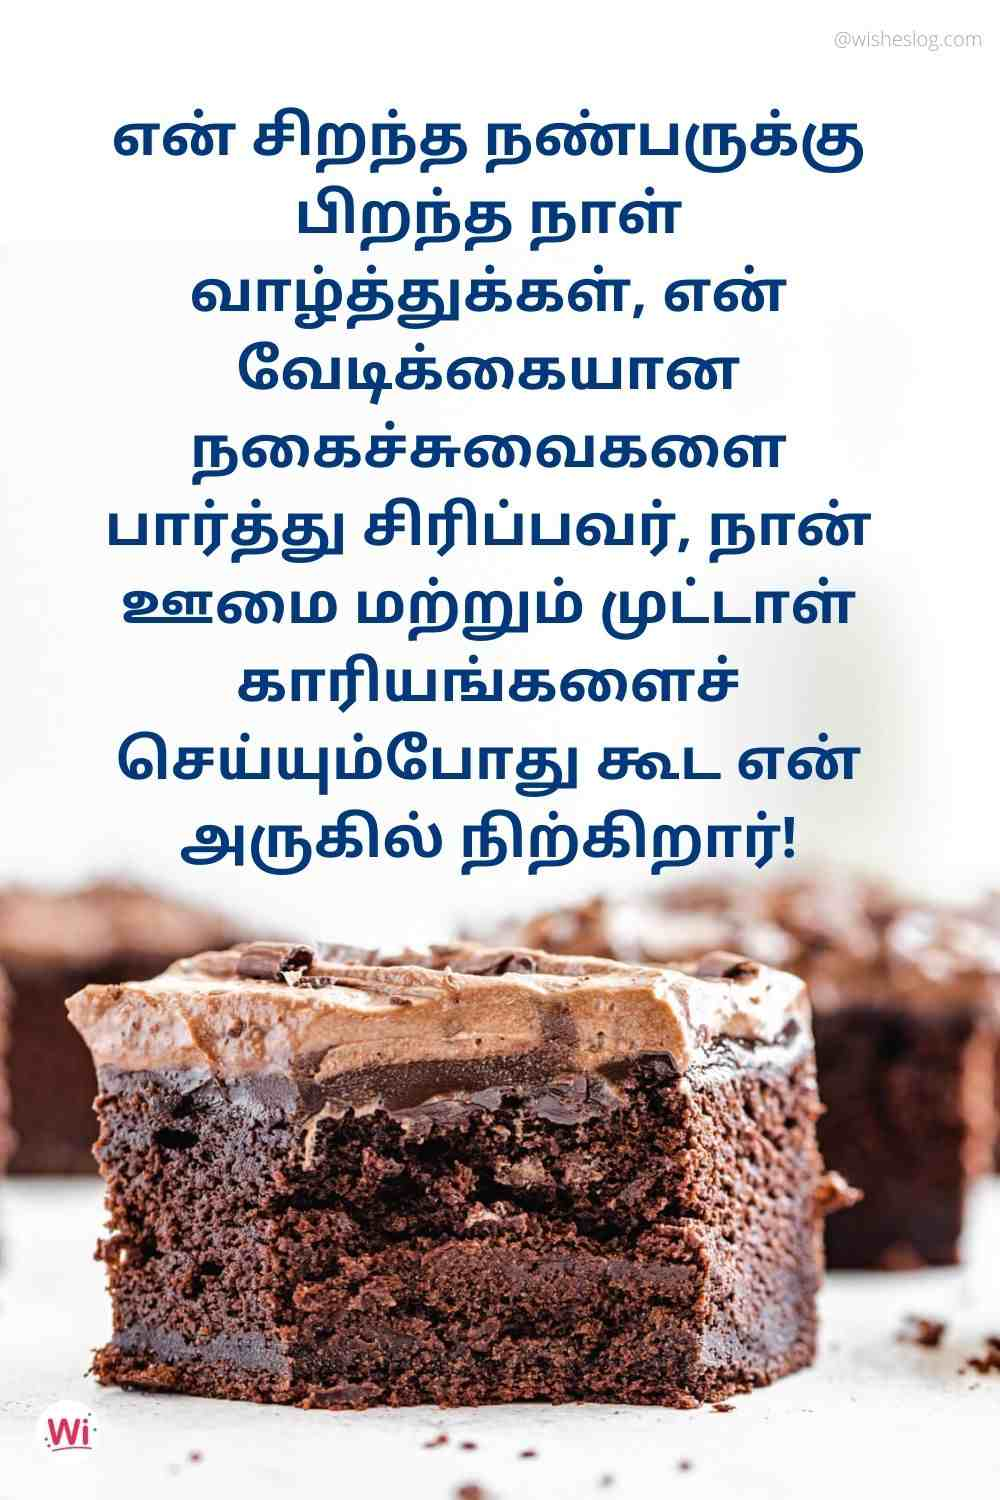 birthday greetings in tamil for friend